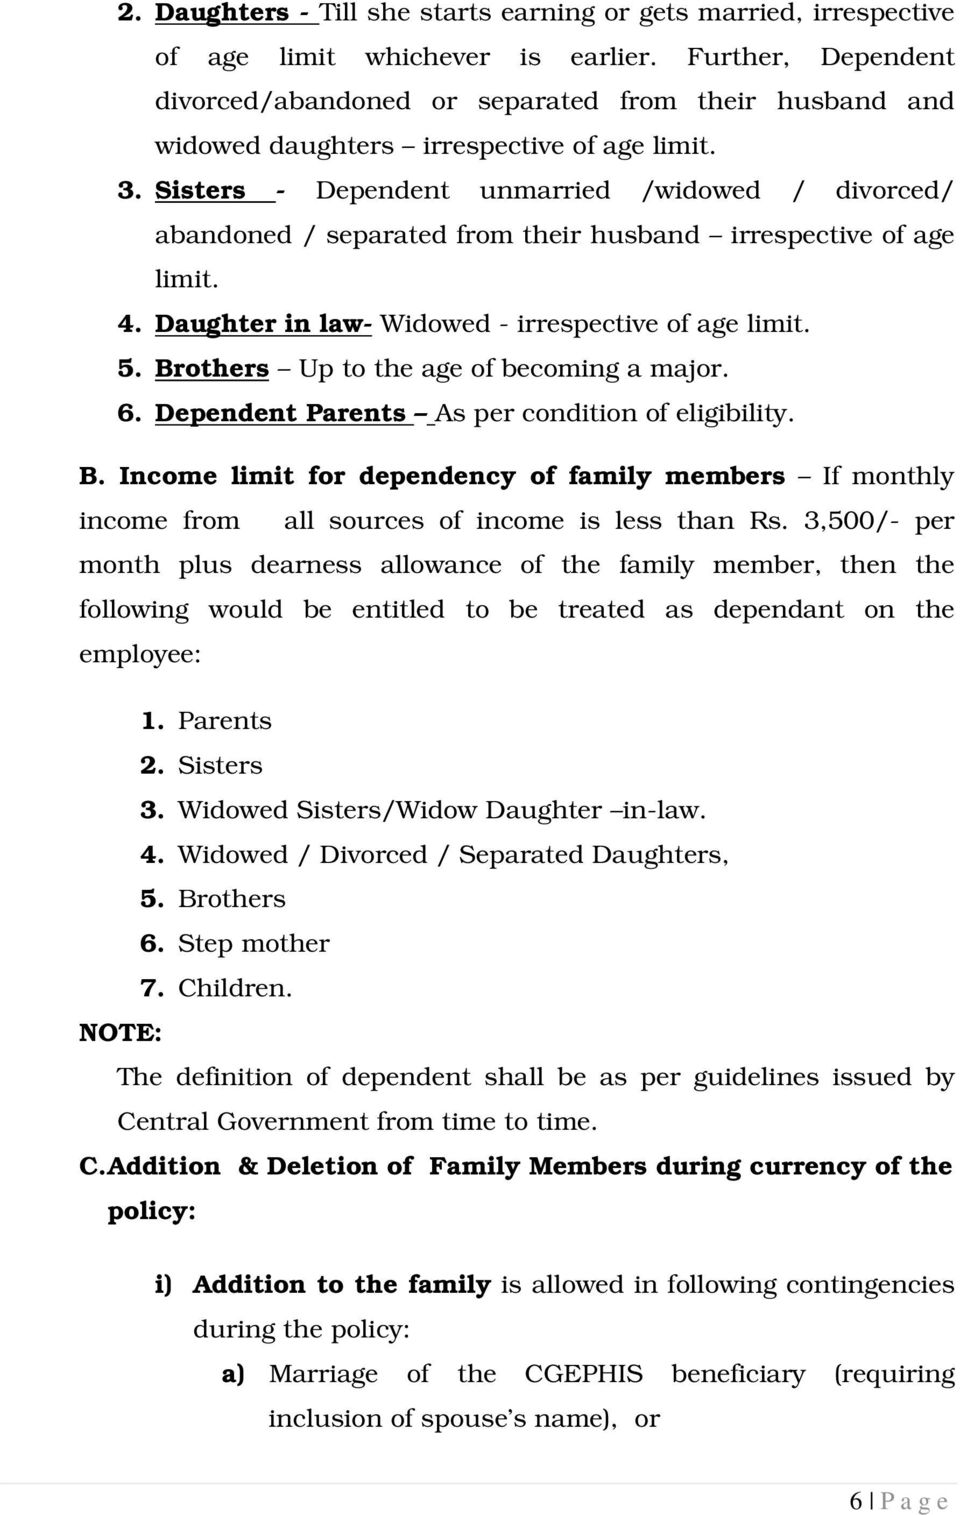 Sisters - Dependent unmarried /widowed / divorced/ abandoned / separated from their husband irrespective of age limit. 4. Daughter in law- Widowed - irrespective of age limit. 5.